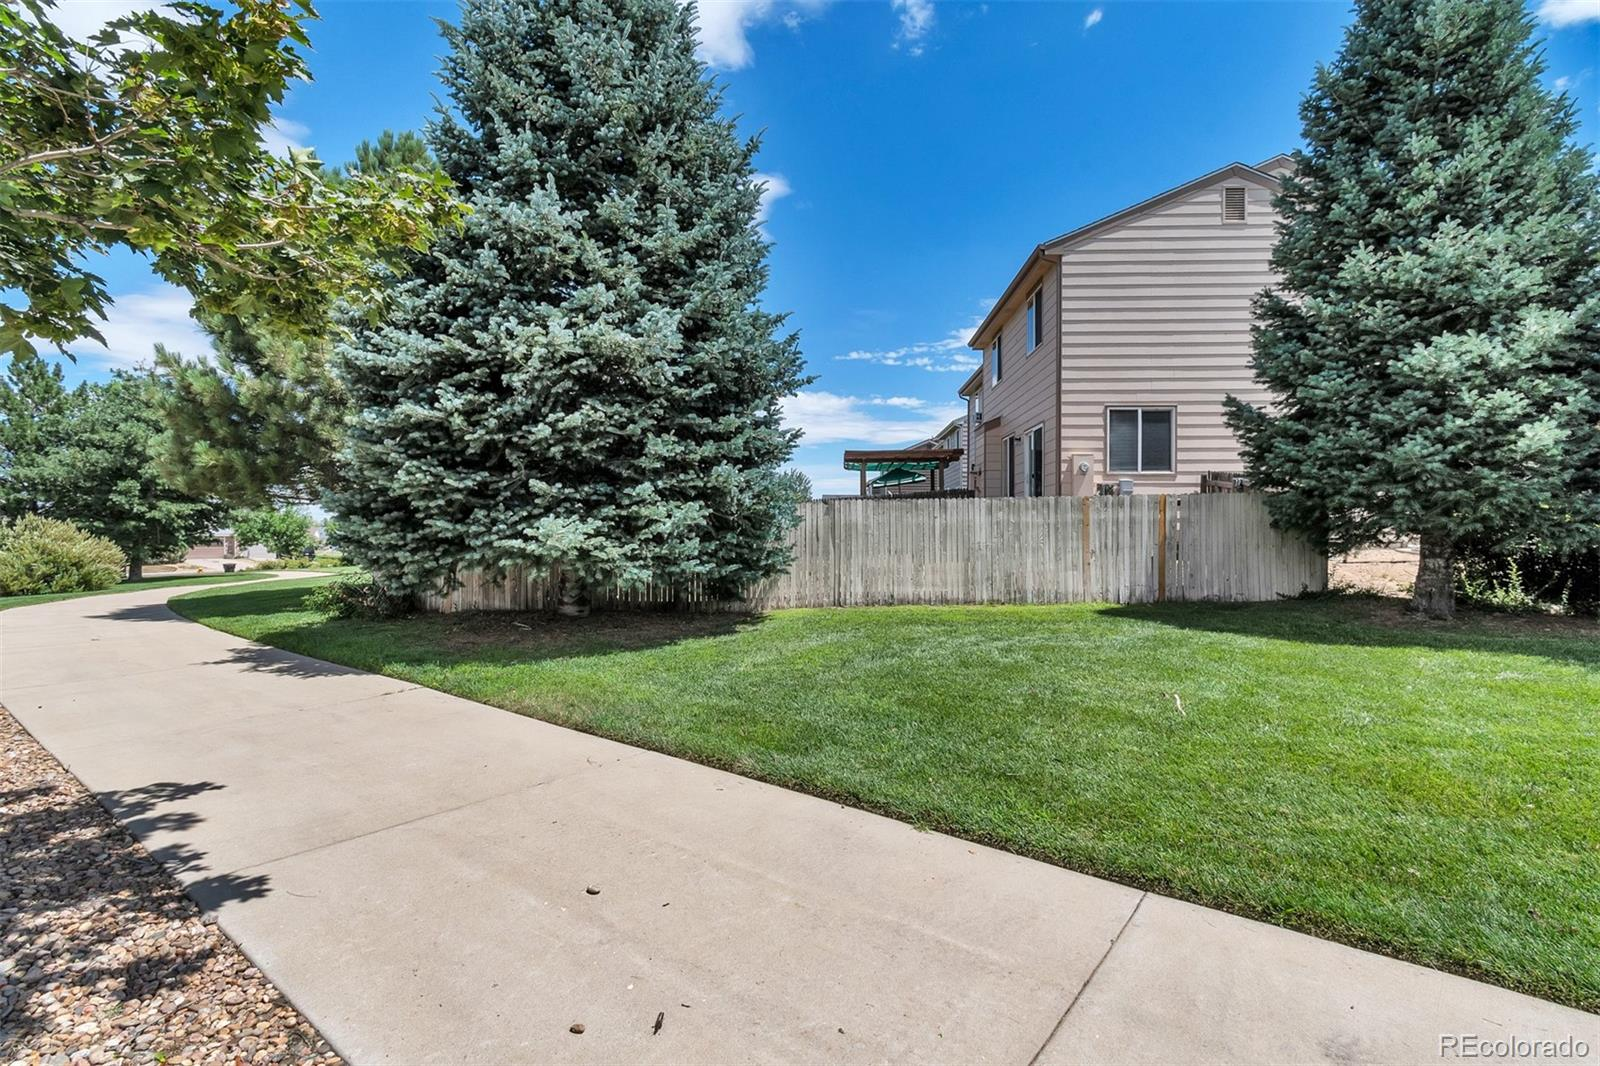 MLS# 3018948 - 25 - 14385 E 47th Drive, Denver, CO 80239